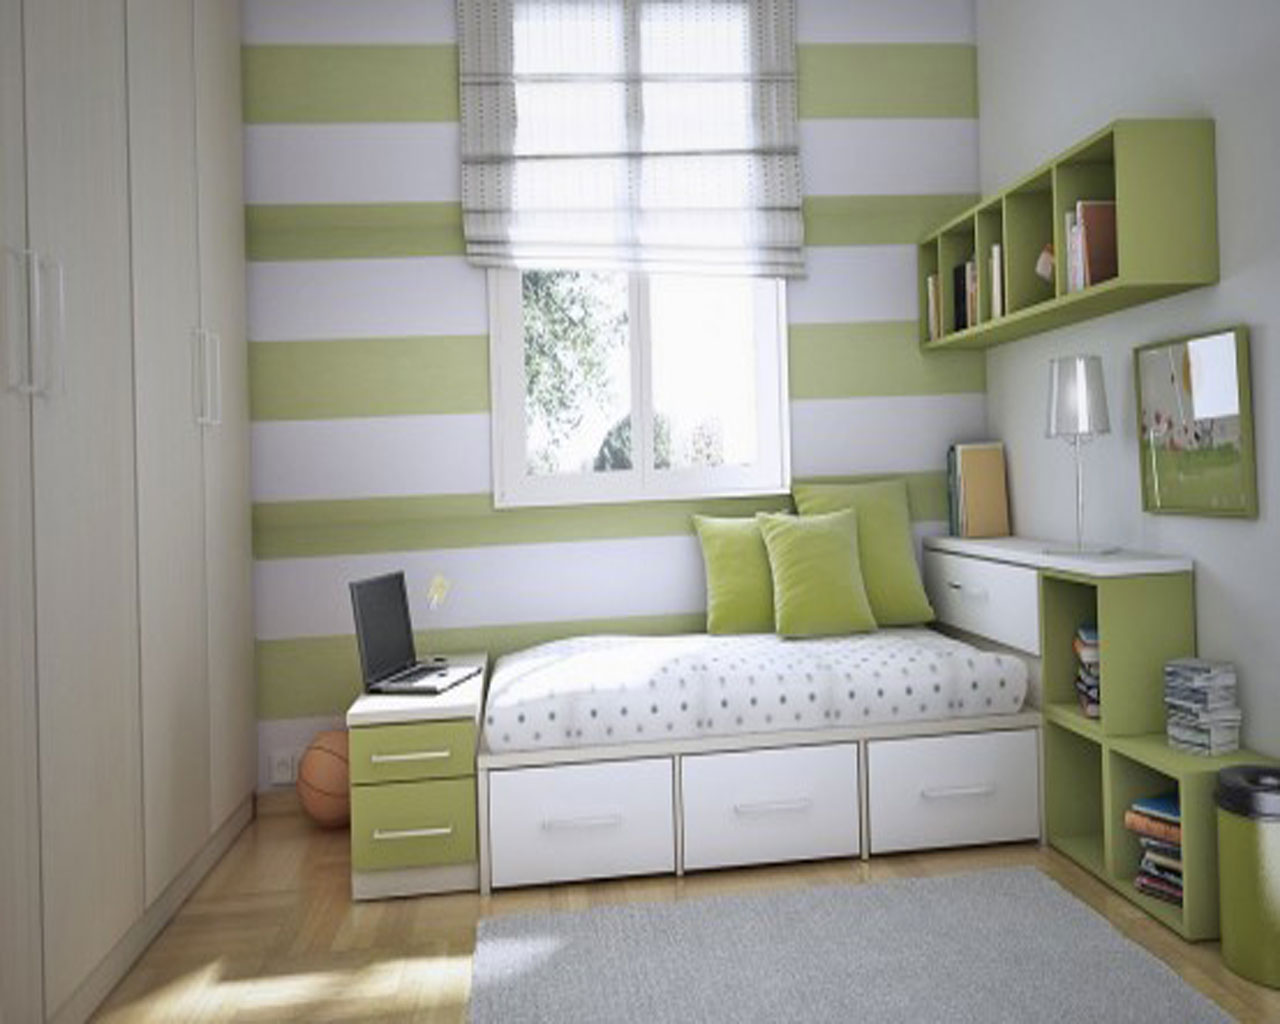 Best kids room design ideas times news uk for Teenage bedroom ideas